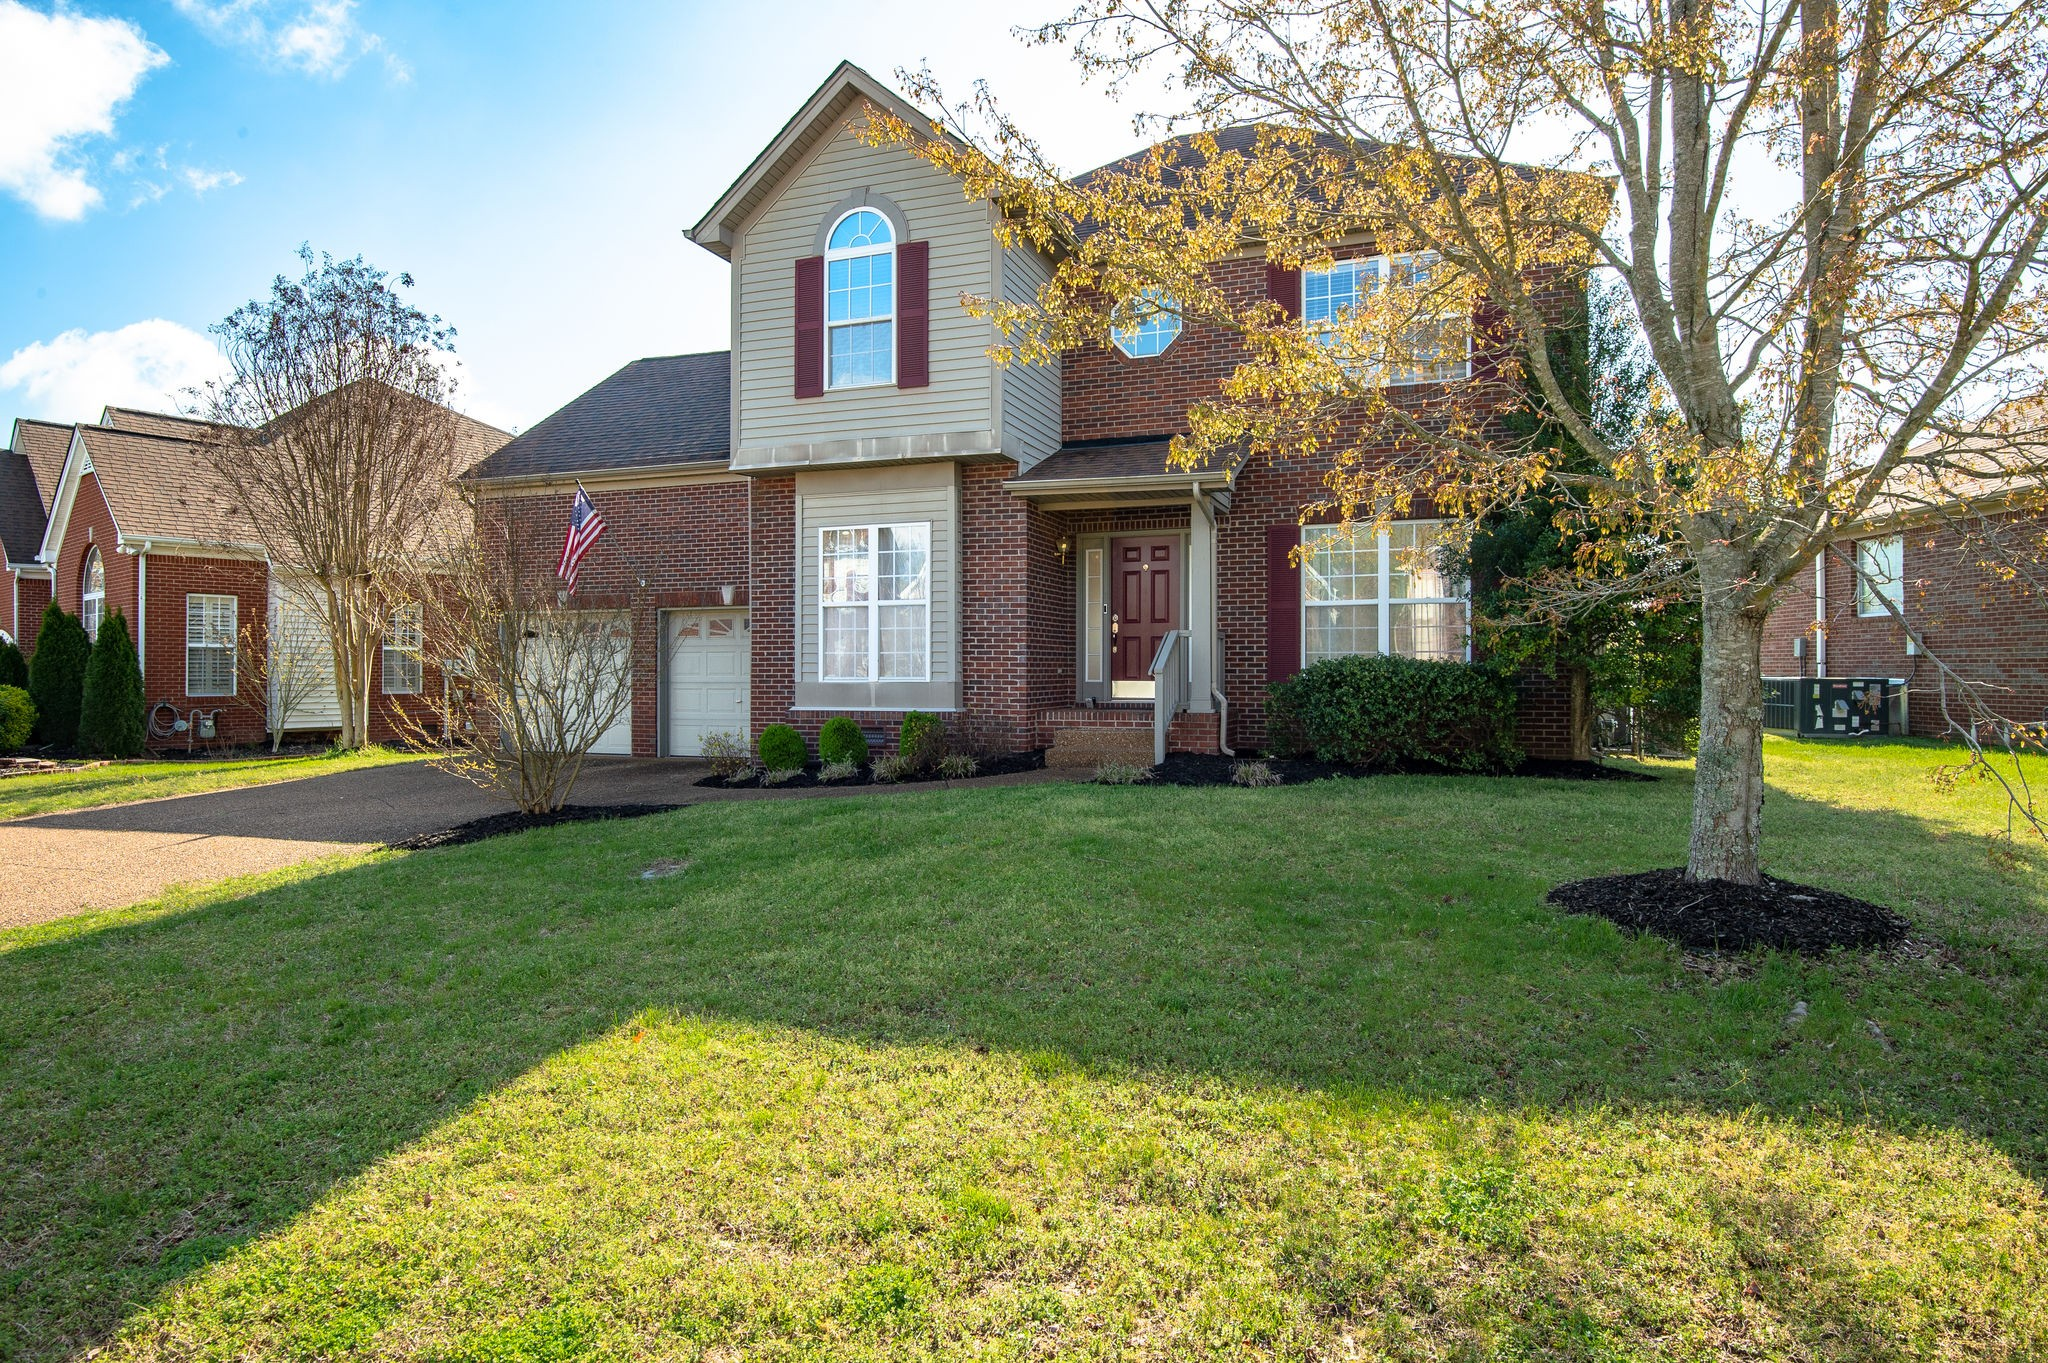 Updated and Move in Ready! Granite Counters, Fresh Paint, Hardwood Floors,Gas Fireplace Fenced Back Yard, & 4 minutes from Downtown Franklin! Home backs up to a large common area. Awesome Neighborhood Pool & Playground!